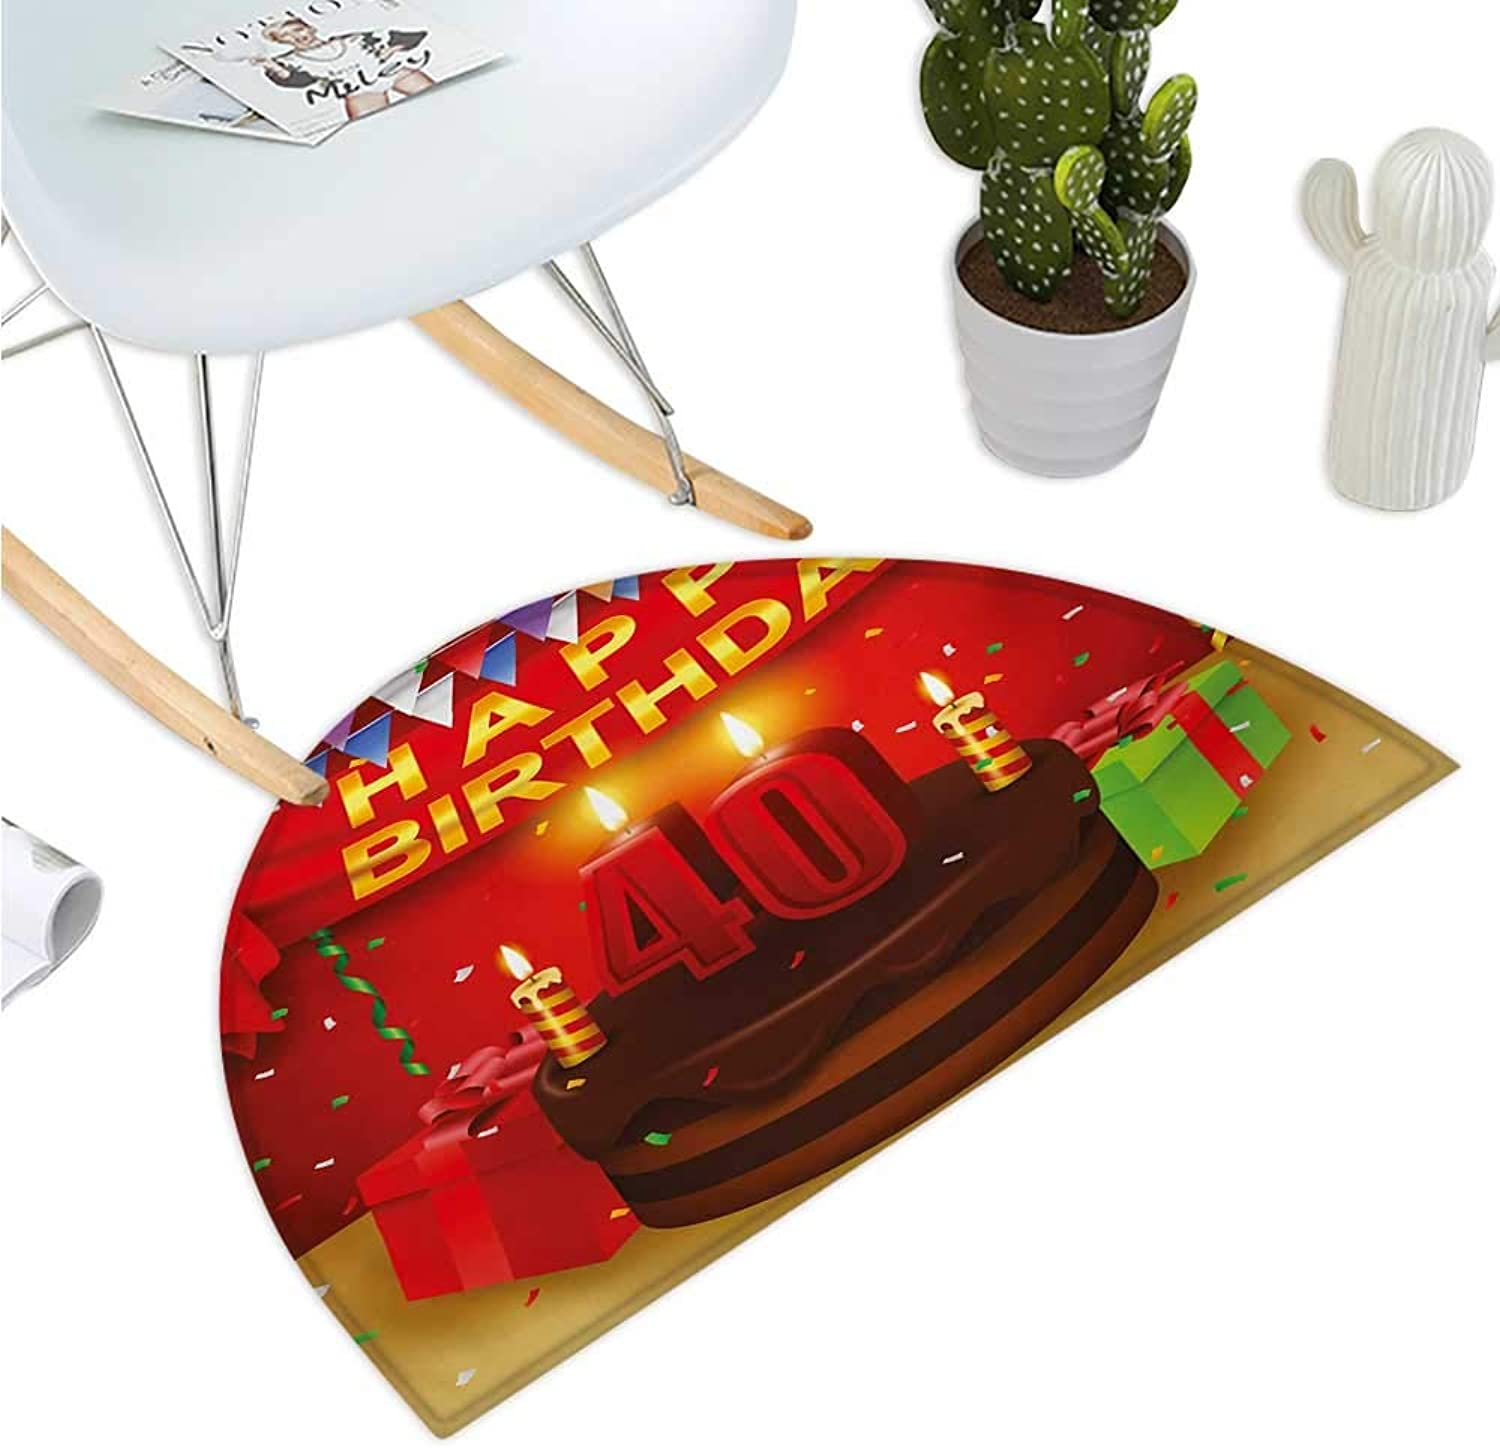 40th Birthday Half Round Door mats Party Set Up with The Flags Chocolate Cake Ribbons and Confetti Rain Print Bathroom Mat H 35.4  xD 53.1  Multicolor